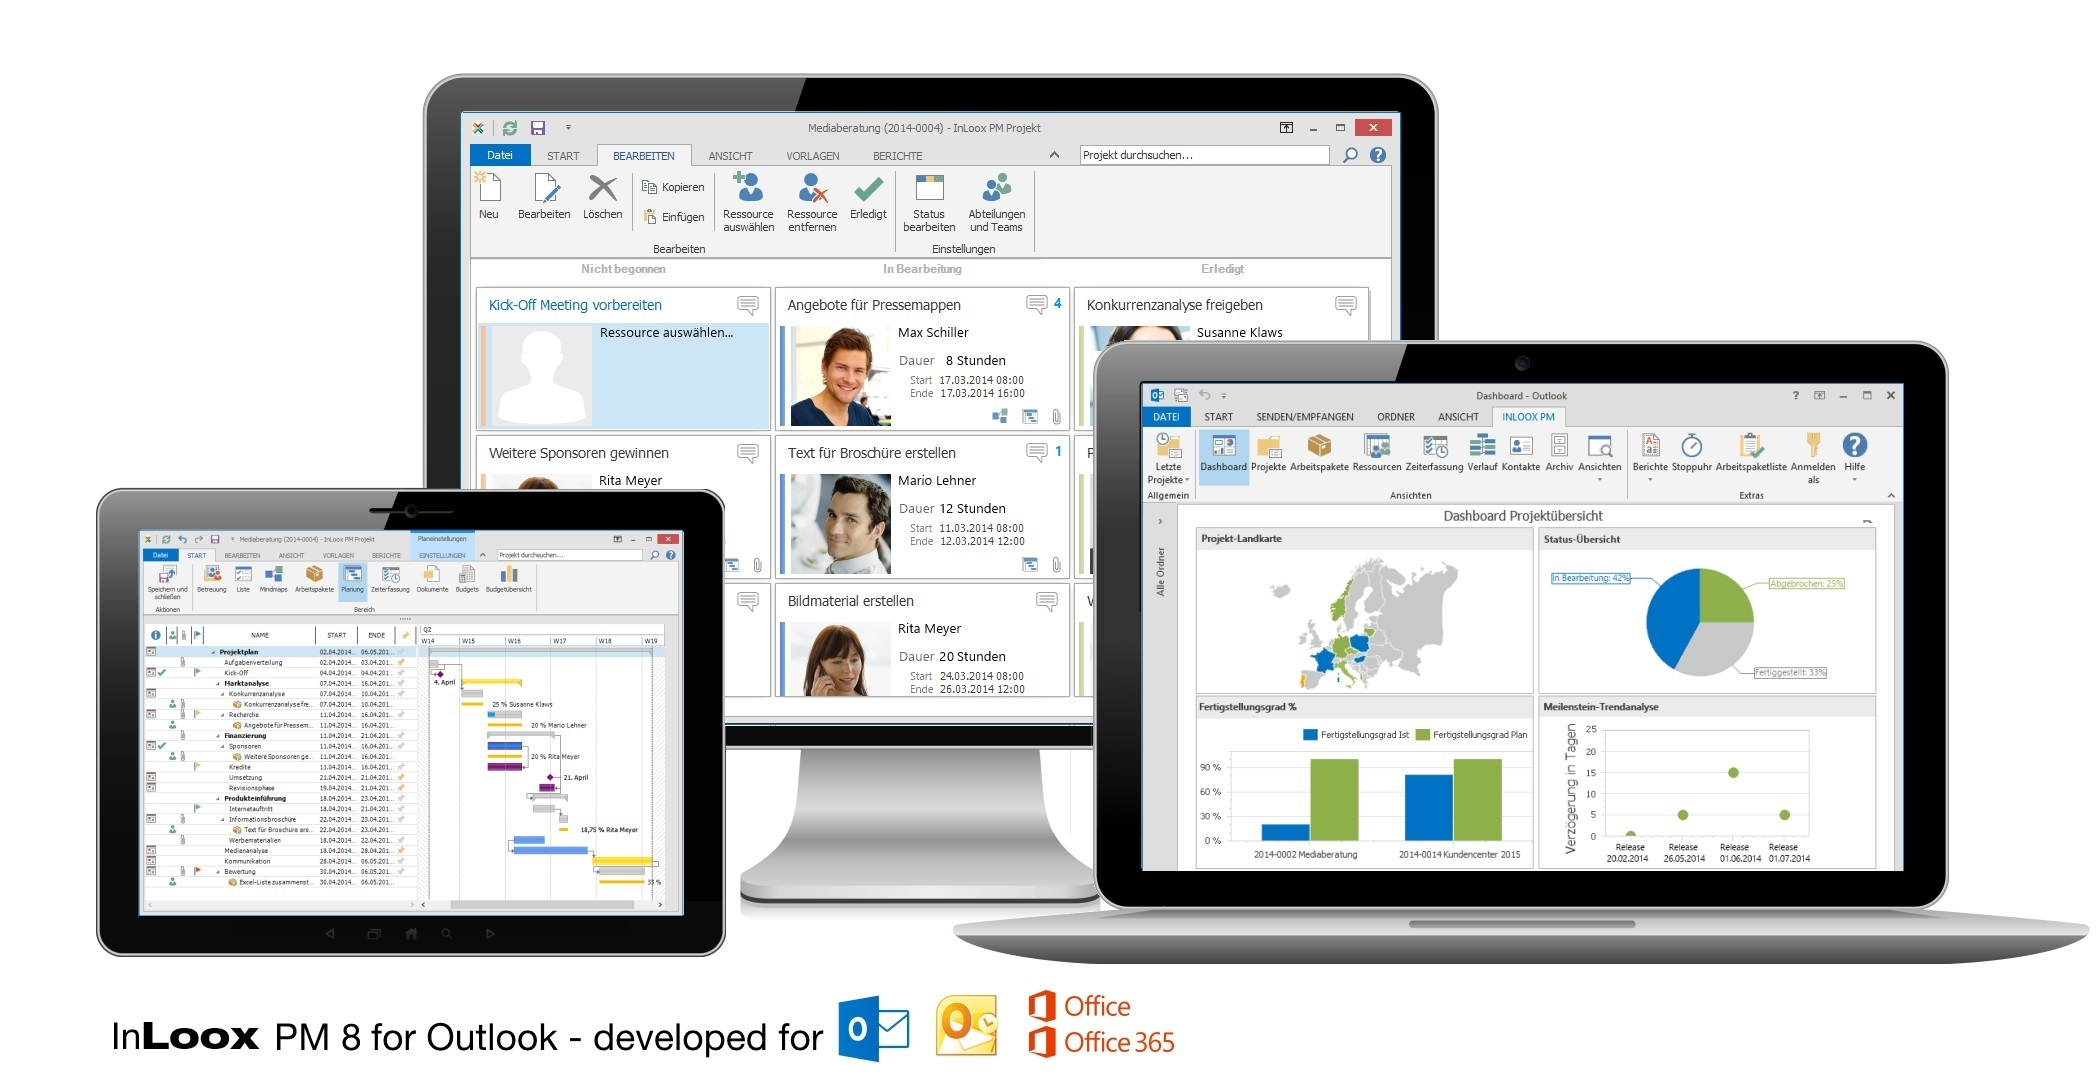 InLoox PM 8 for Outlook - Project Management Software Perfectly Integrated with Microsoft Outlook